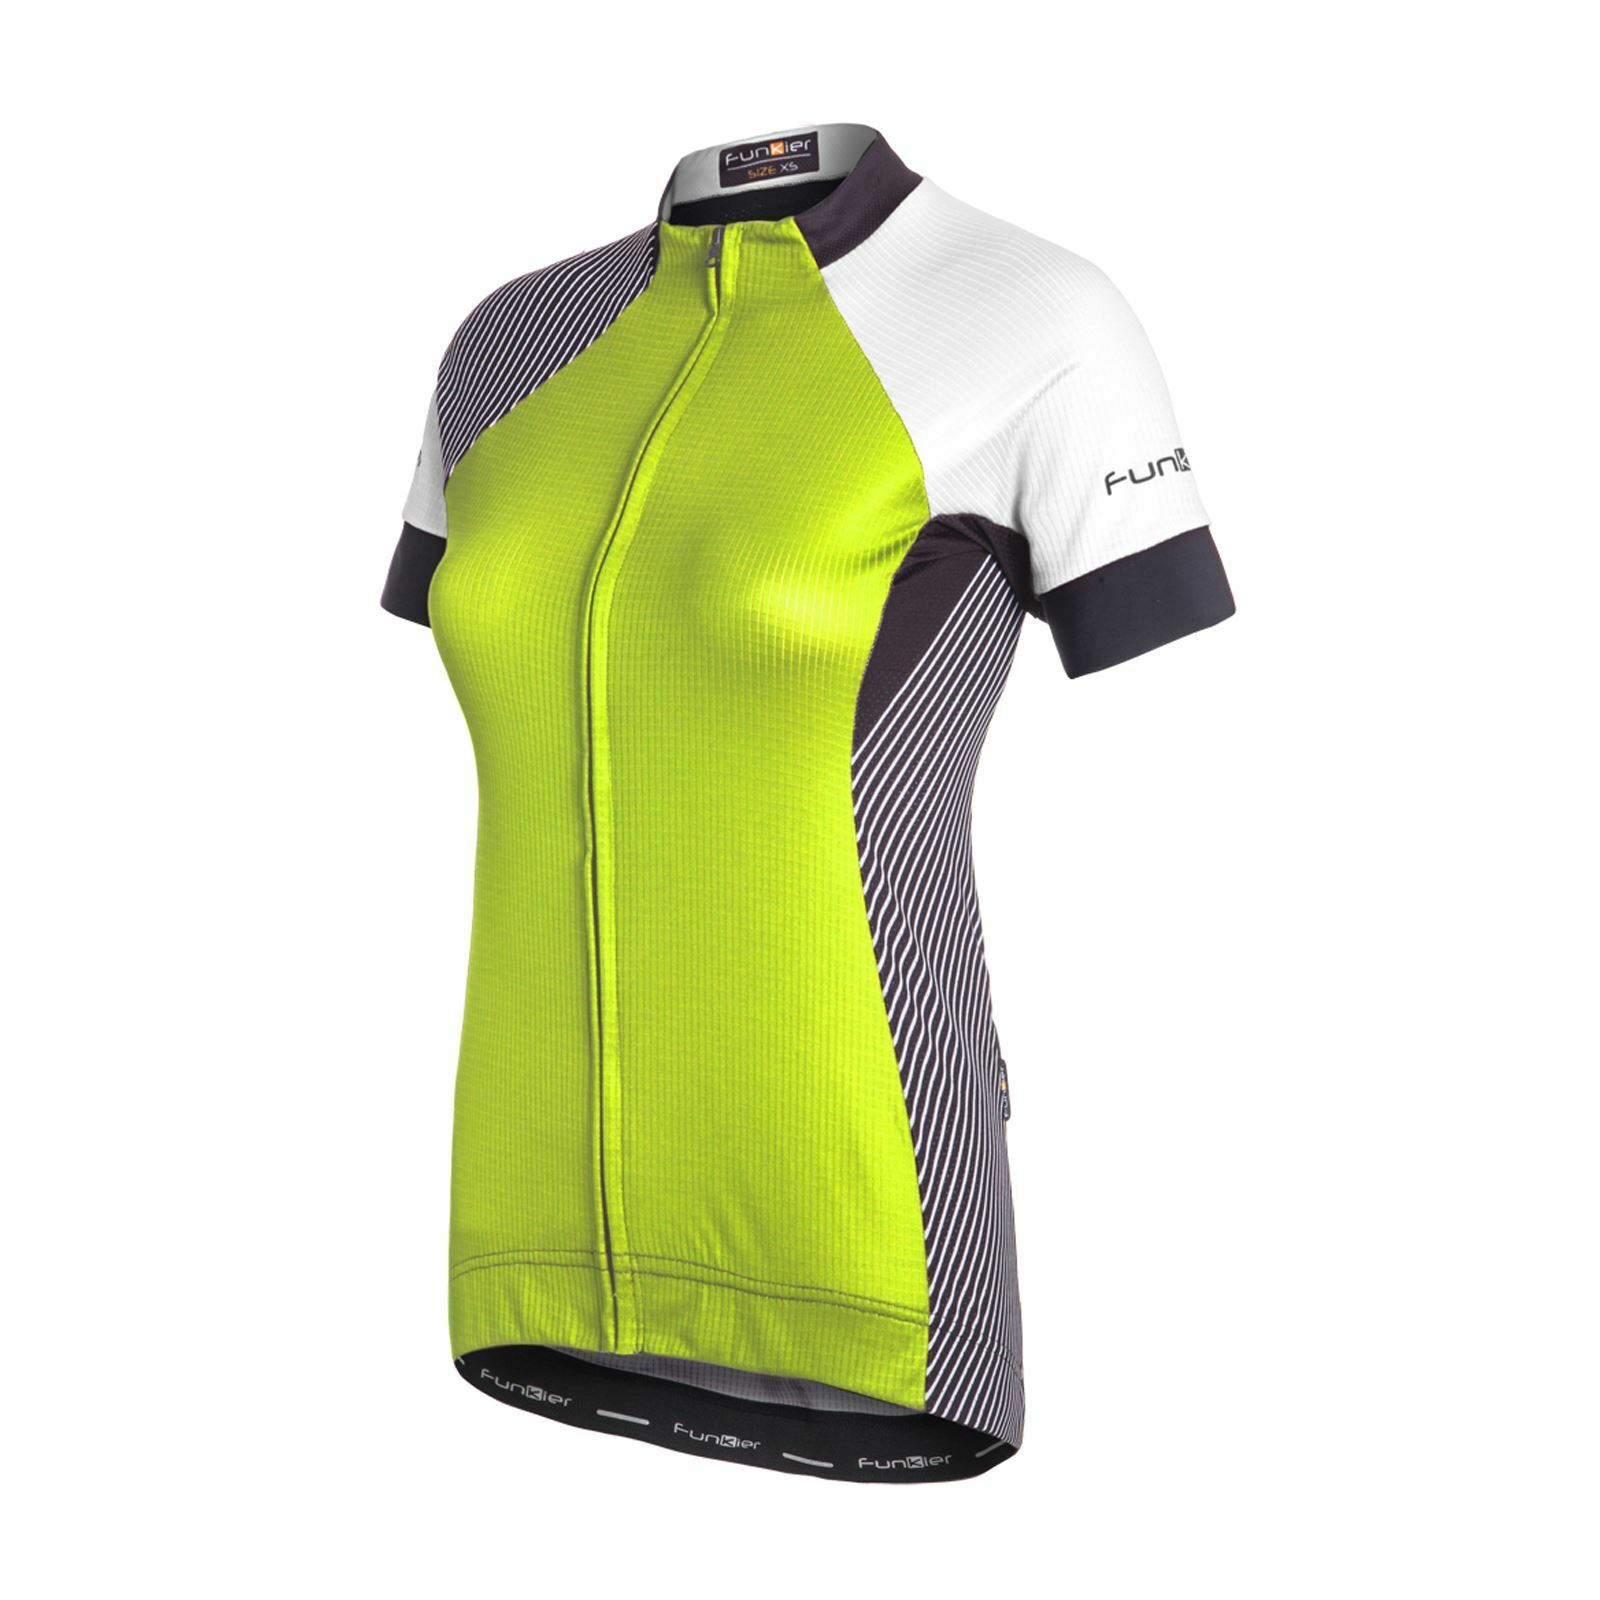 Funkier Mataro Pro Ladies Rider Short  Sleeve Jersey Racer Cut Neon Yellow Medium  there are more brands of high-quality goods